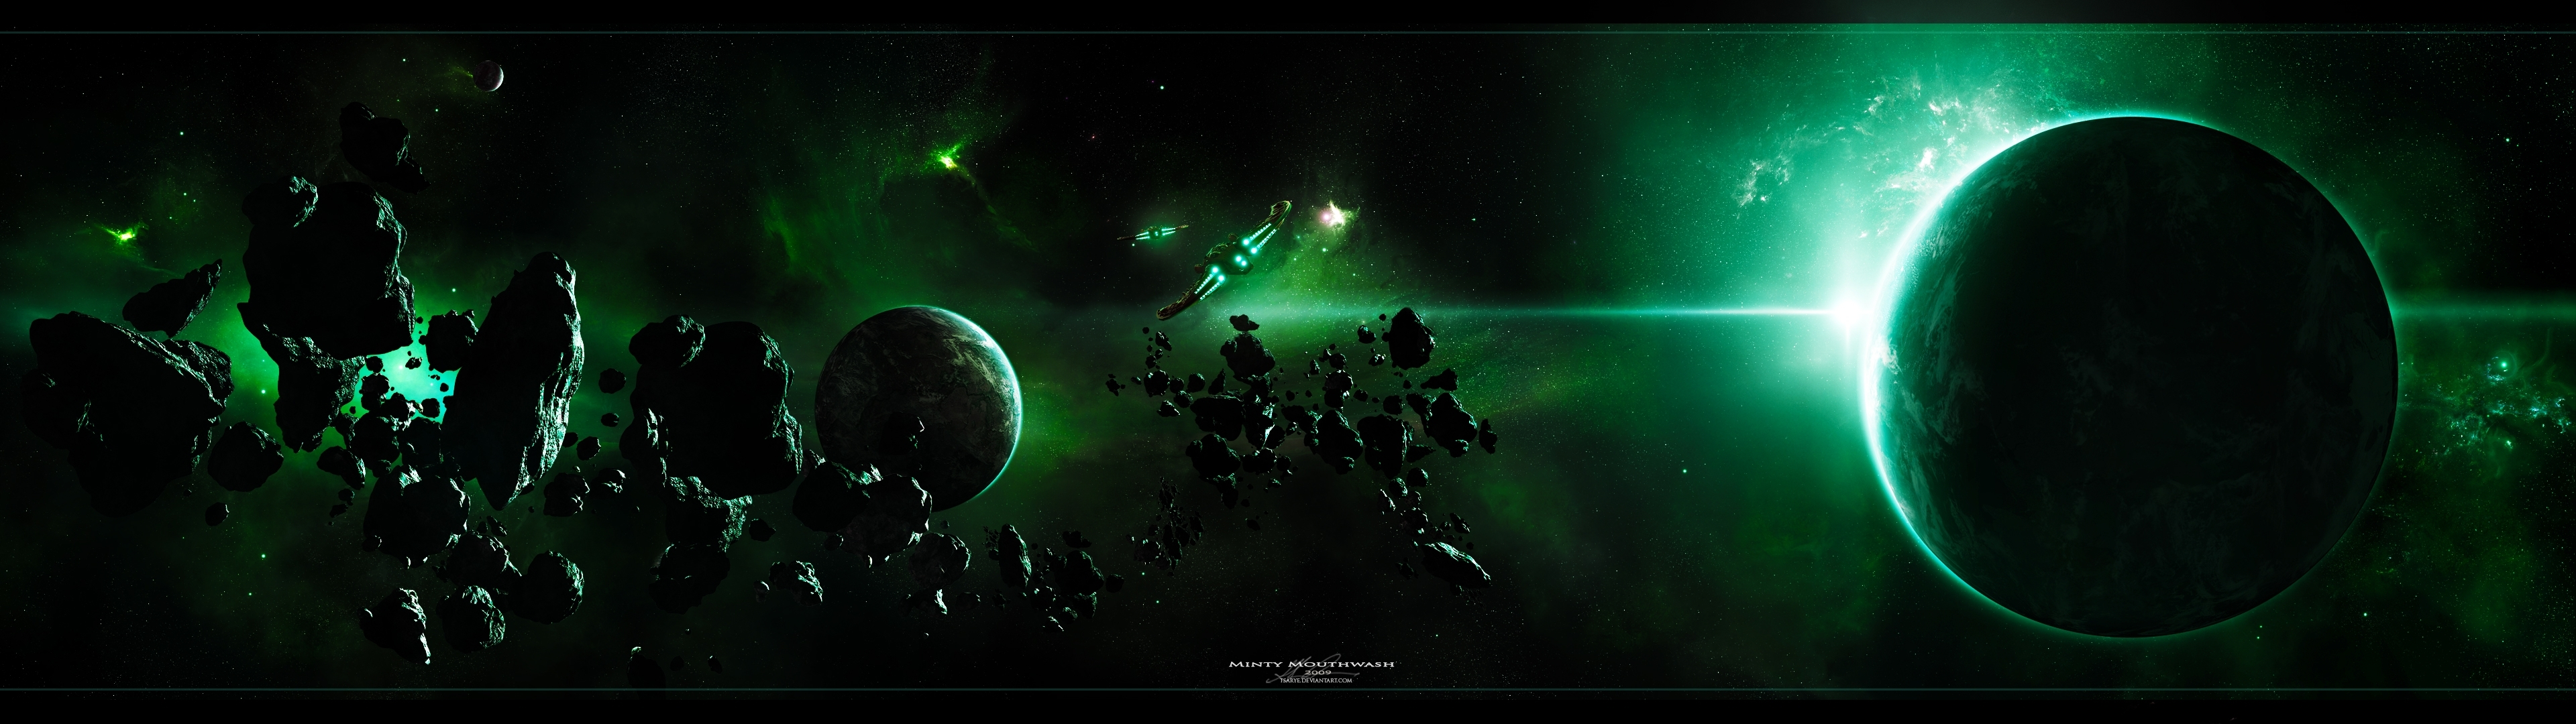 space planets dual screen 3840x1080 wallpaper Wallpaper 3840x1080